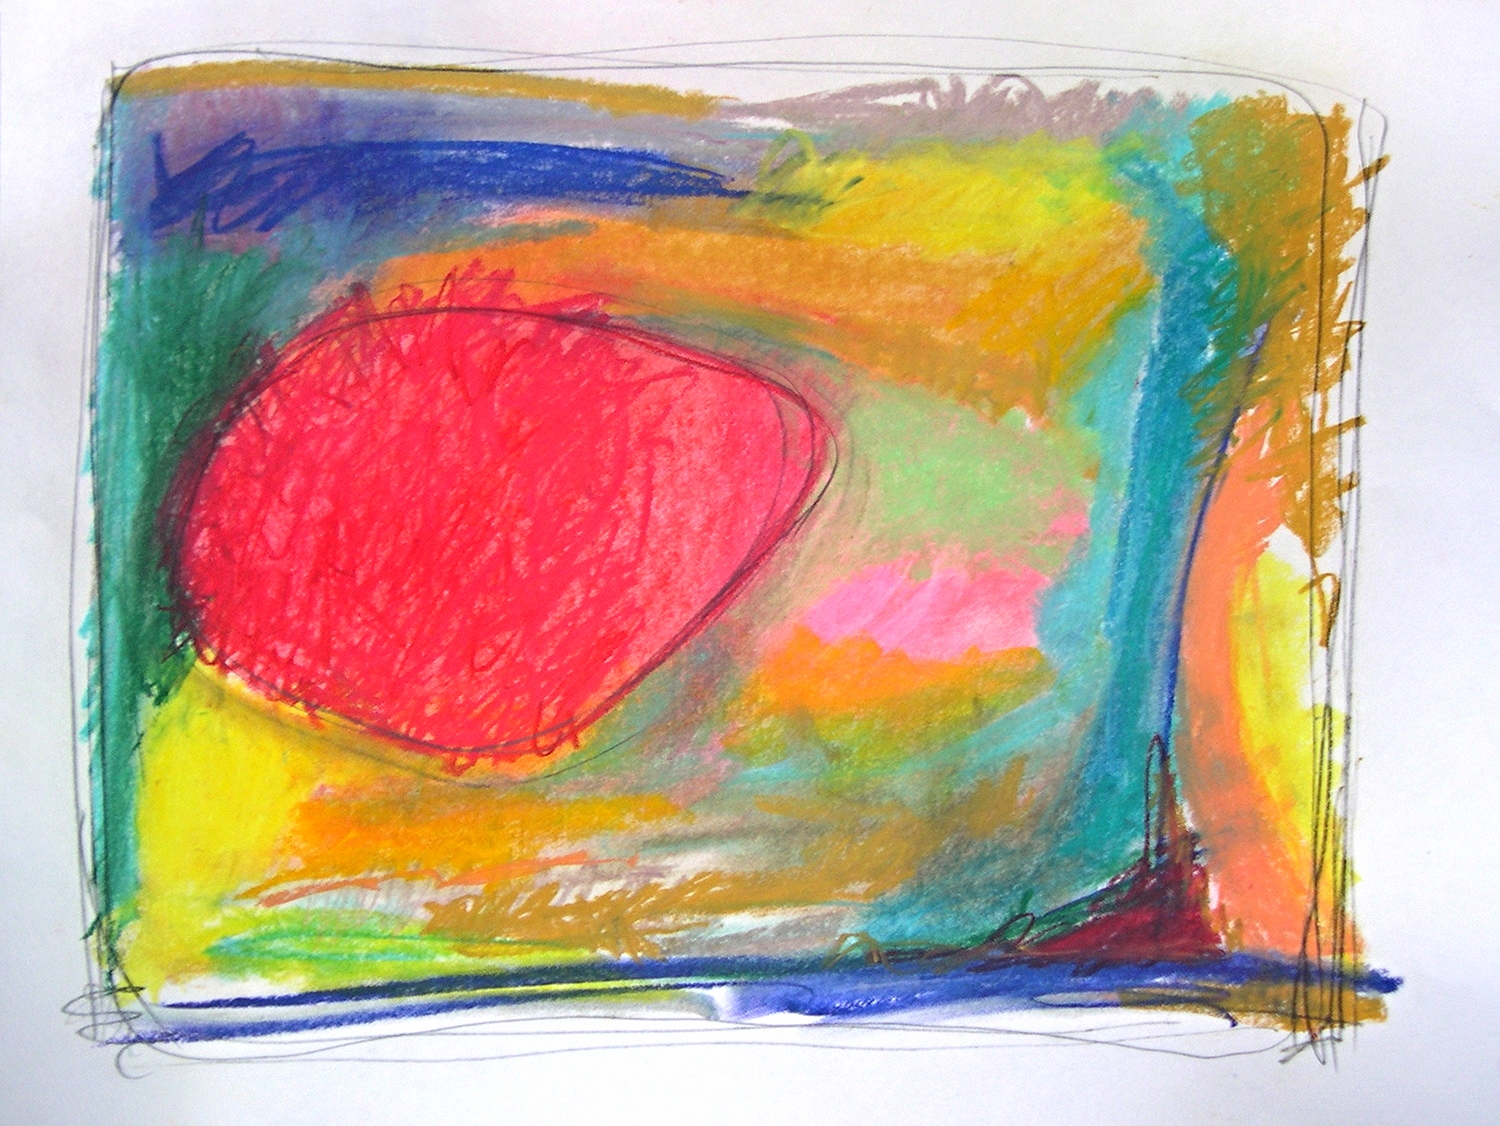 """atropos 2006 Pastel and pencil on paper. 28¾"""" x 22¾"""""""